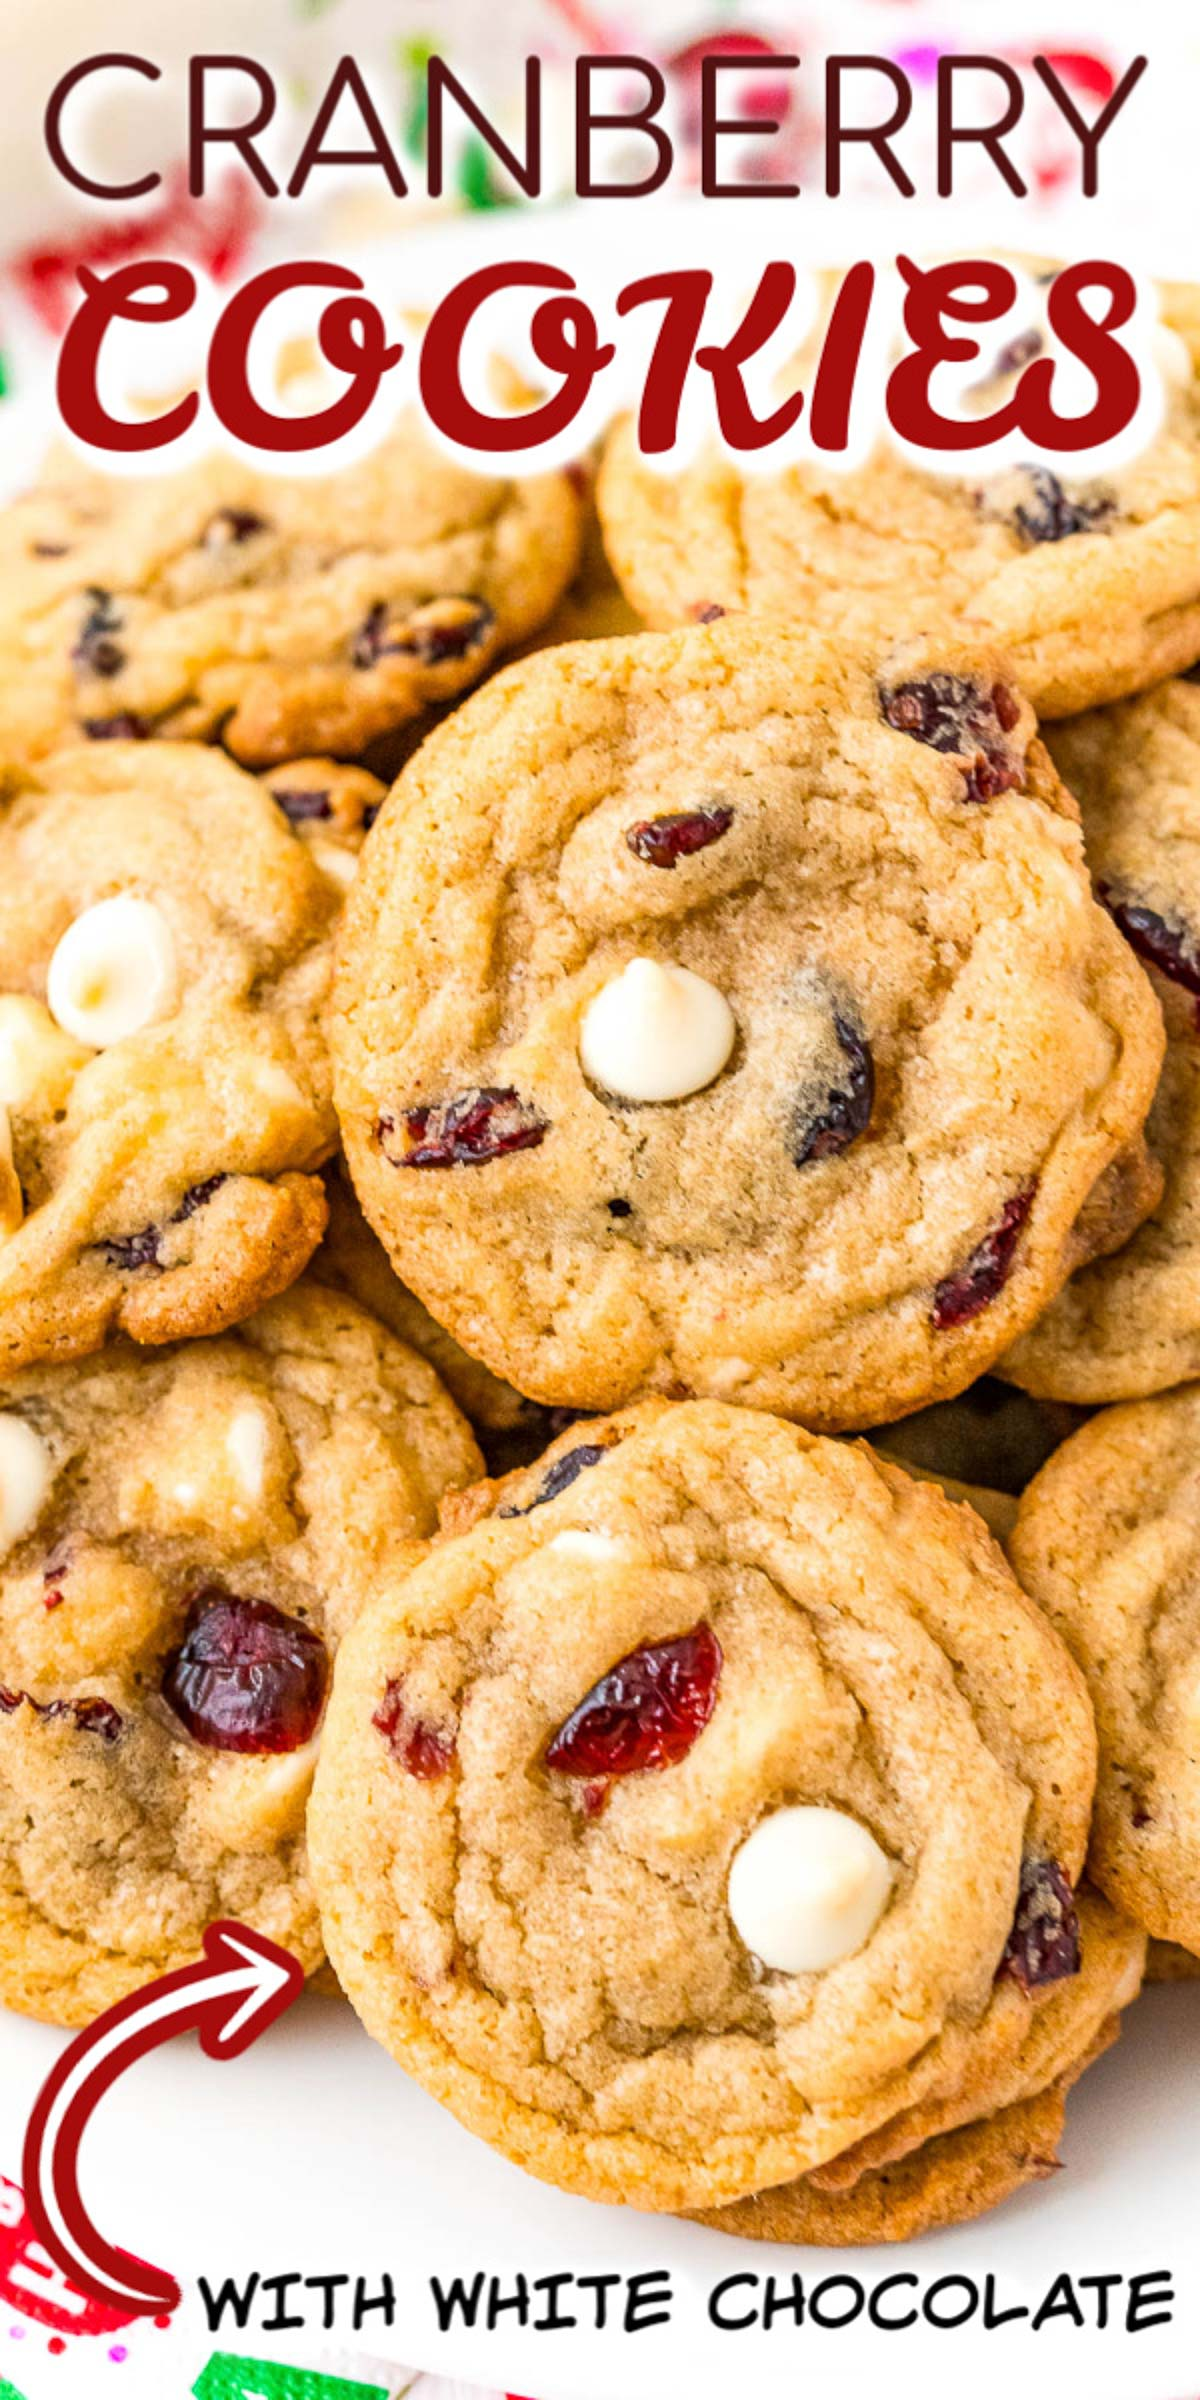 White Chocolate Cranberry Cookies are deliciously chewy and loaded with tart cranberries and rich white chocolate. Make and share these treats during the holiday season for get-togethers, cookie swaps, and hostess gifts! via @sugarandsoulco